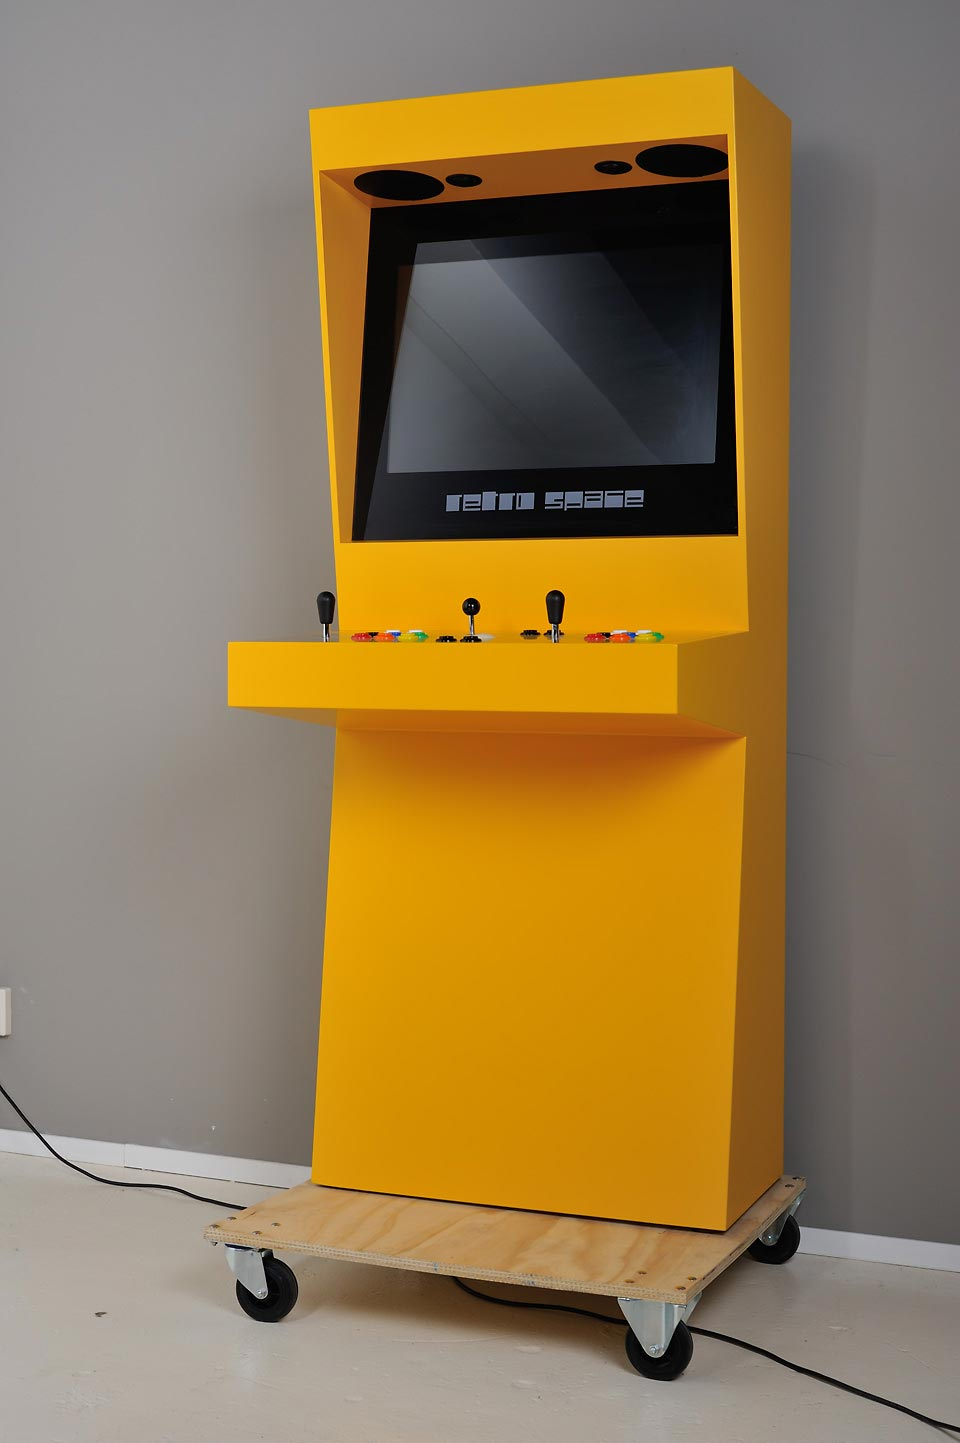 retro space arcade cabinets. Black Bedroom Furniture Sets. Home Design Ideas